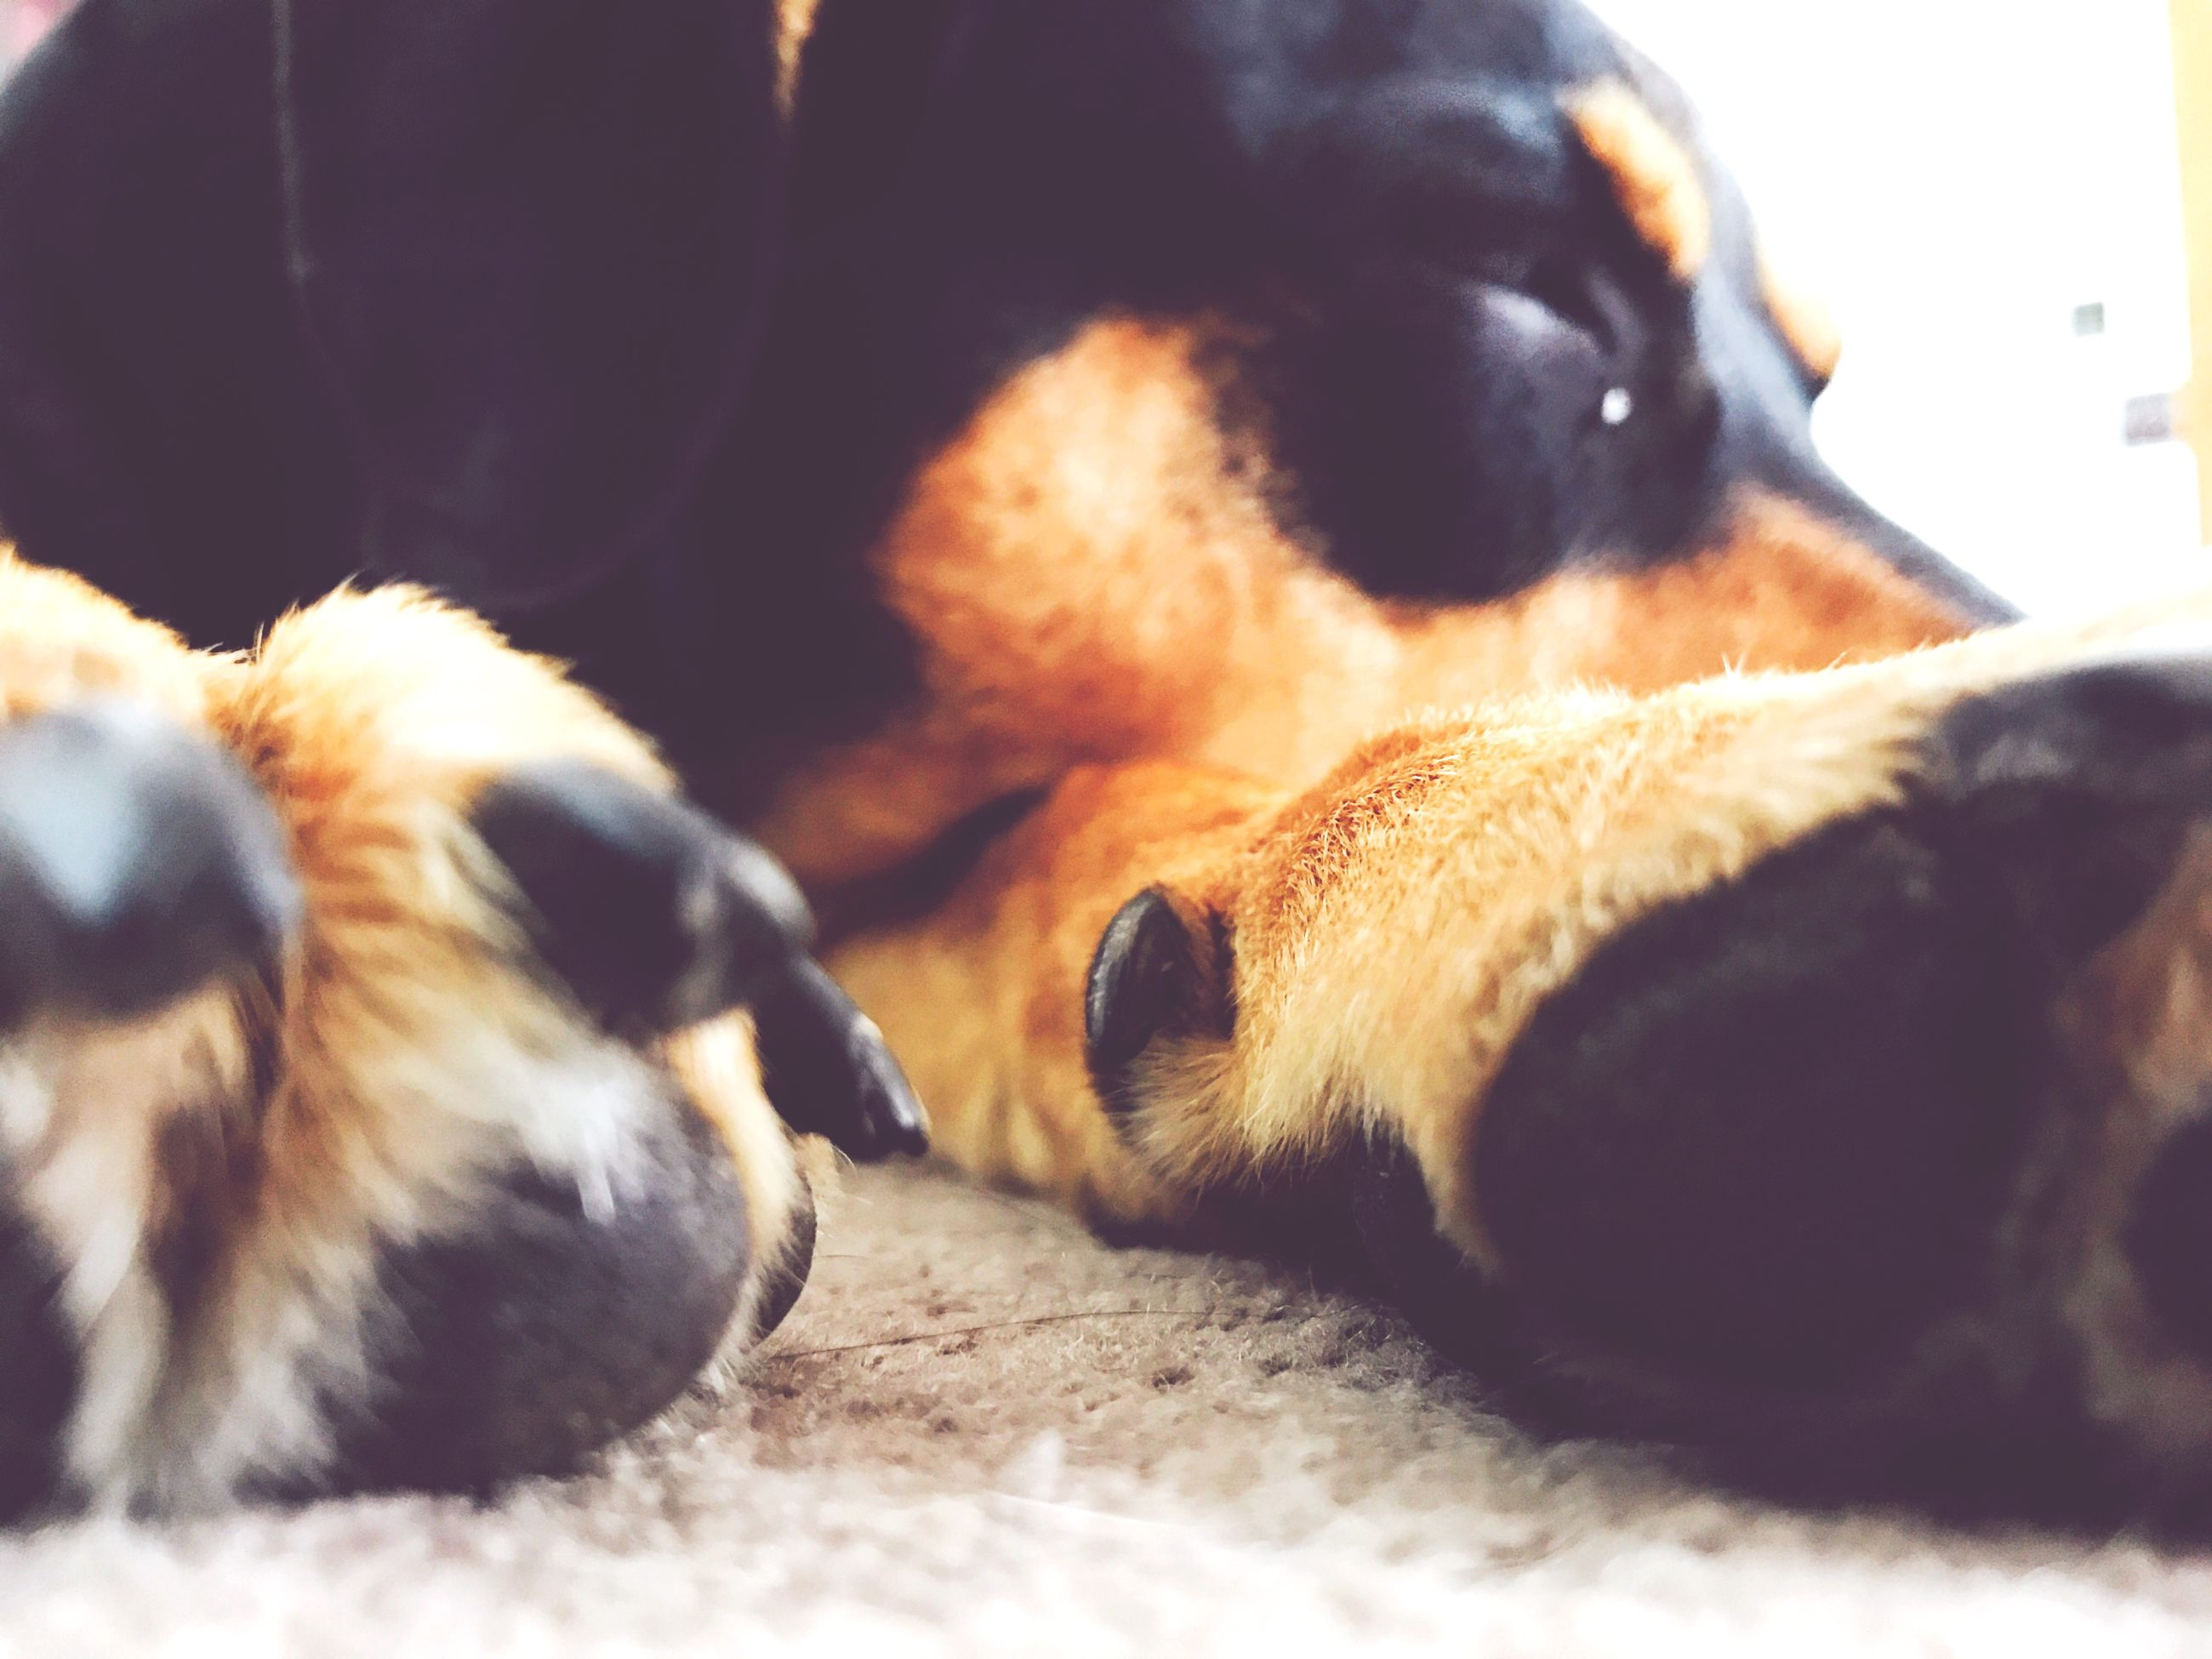 pets, domestic animals, animal themes, mammal, relaxation, dog, one animal, no people, close-up, indoors, day